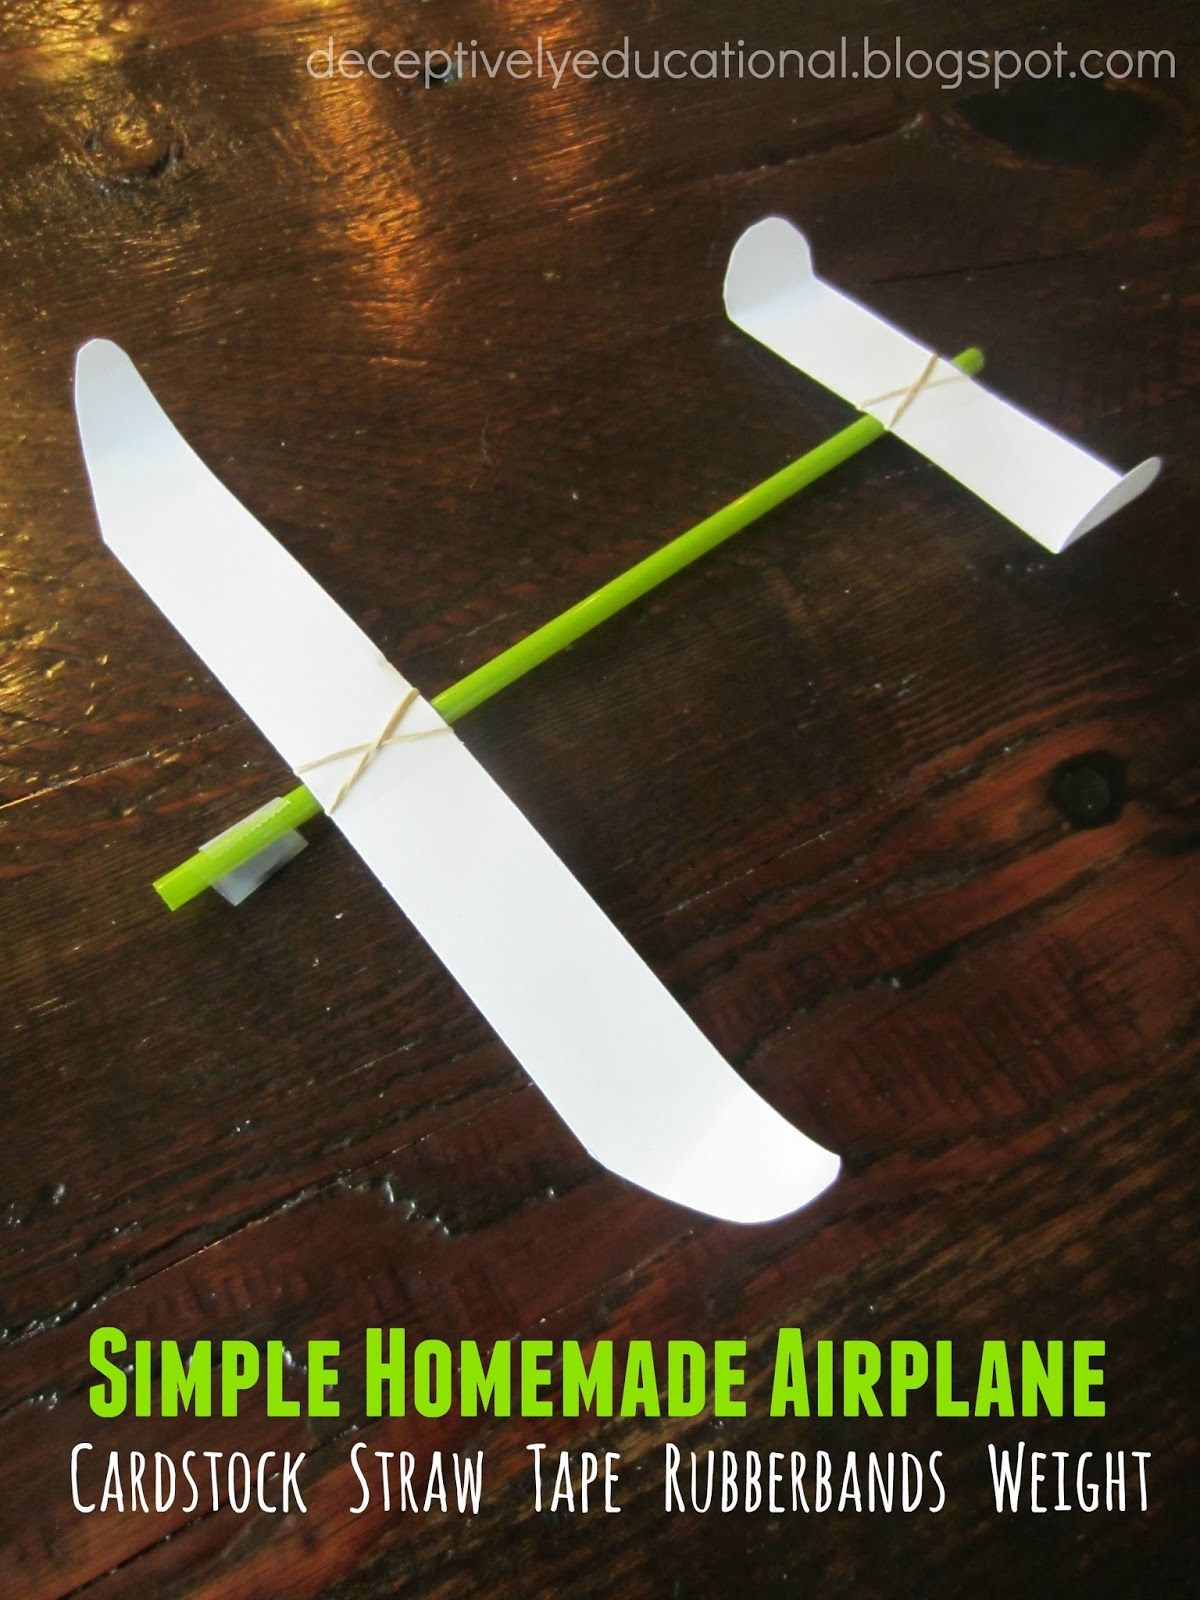 Simple Homemade Airplane With Images